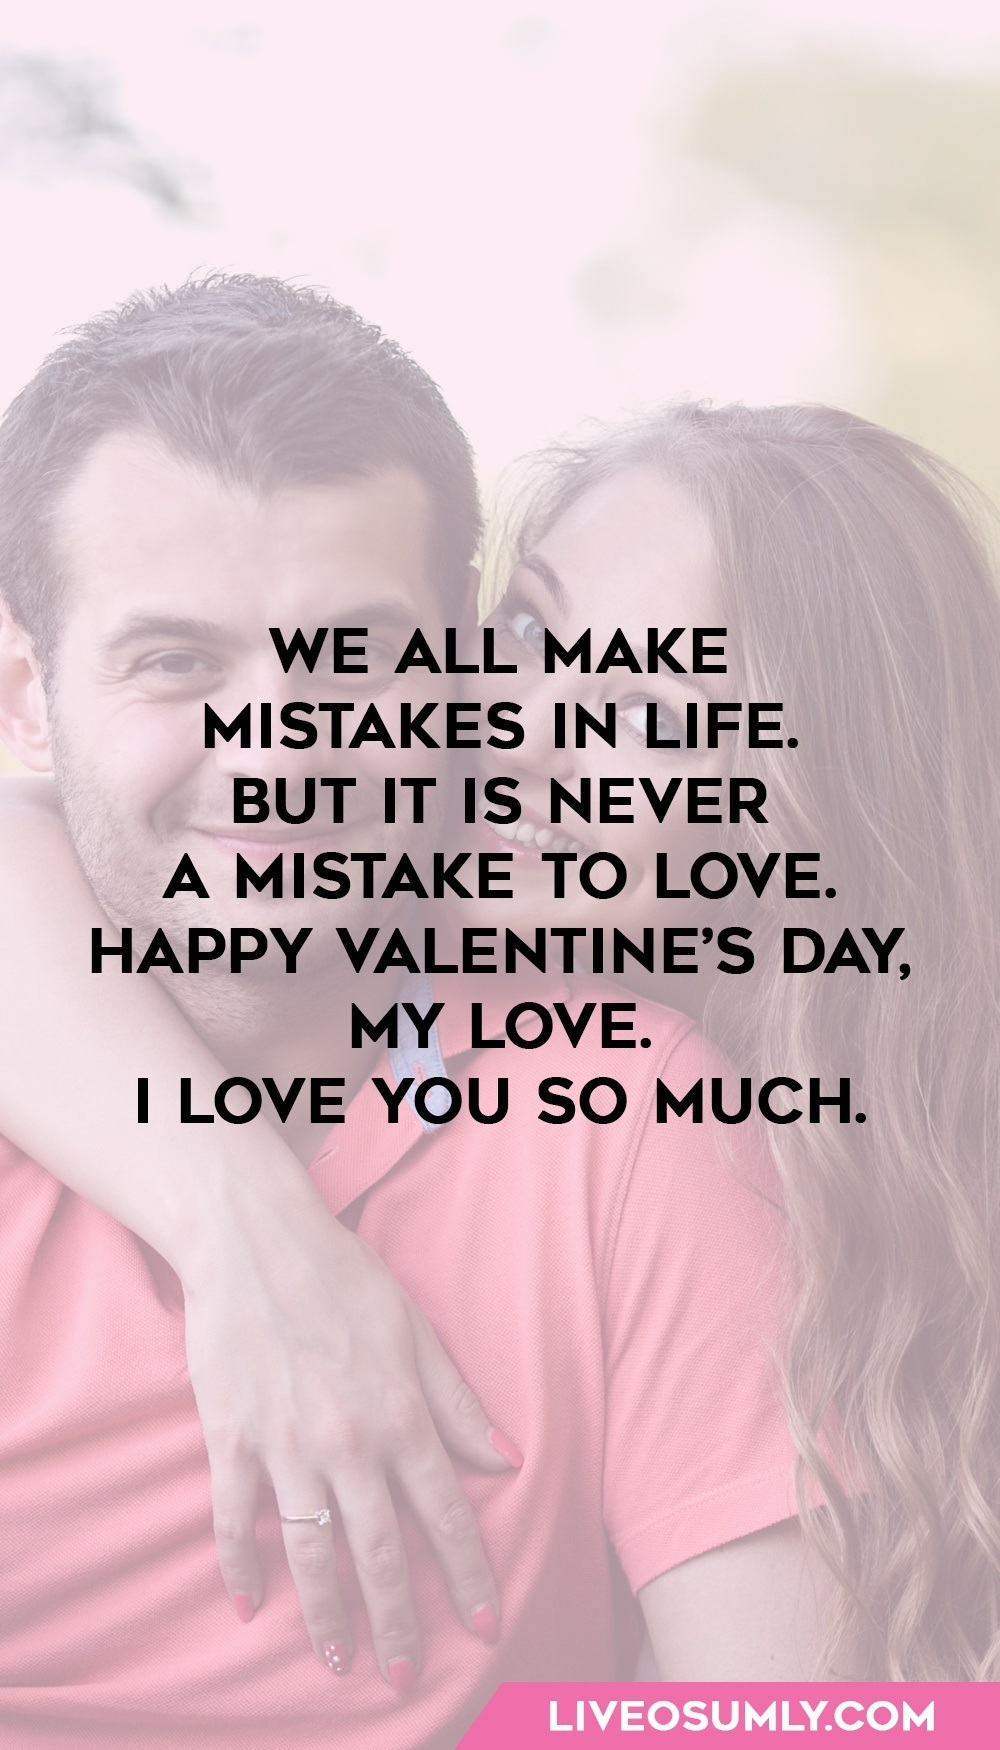 45. Lovely Valentines Day Quotes